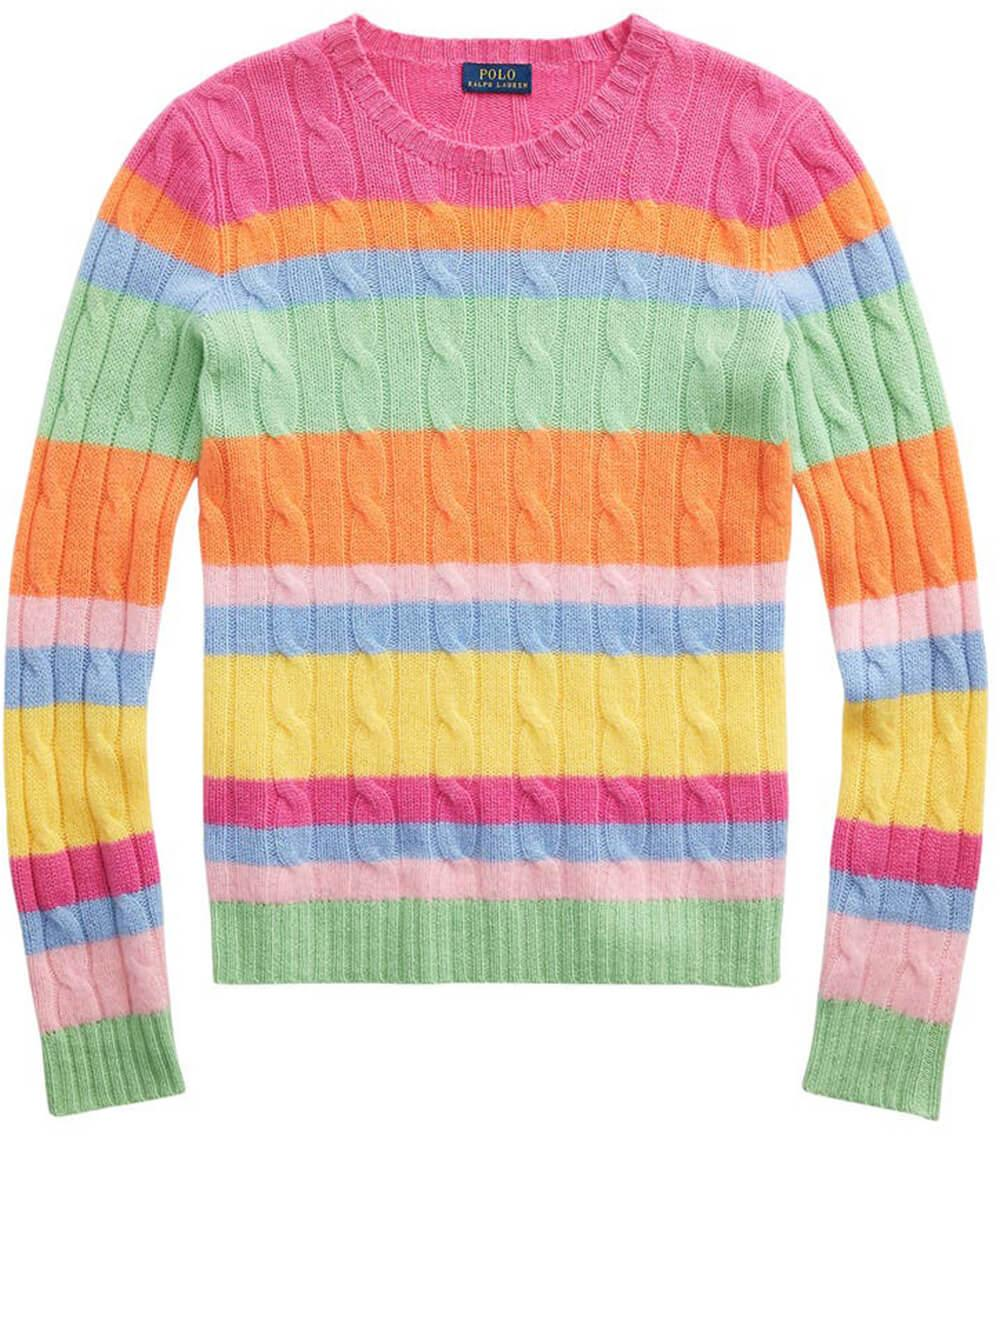 Julianna Multi Stripe Sweater Item # 211838163001